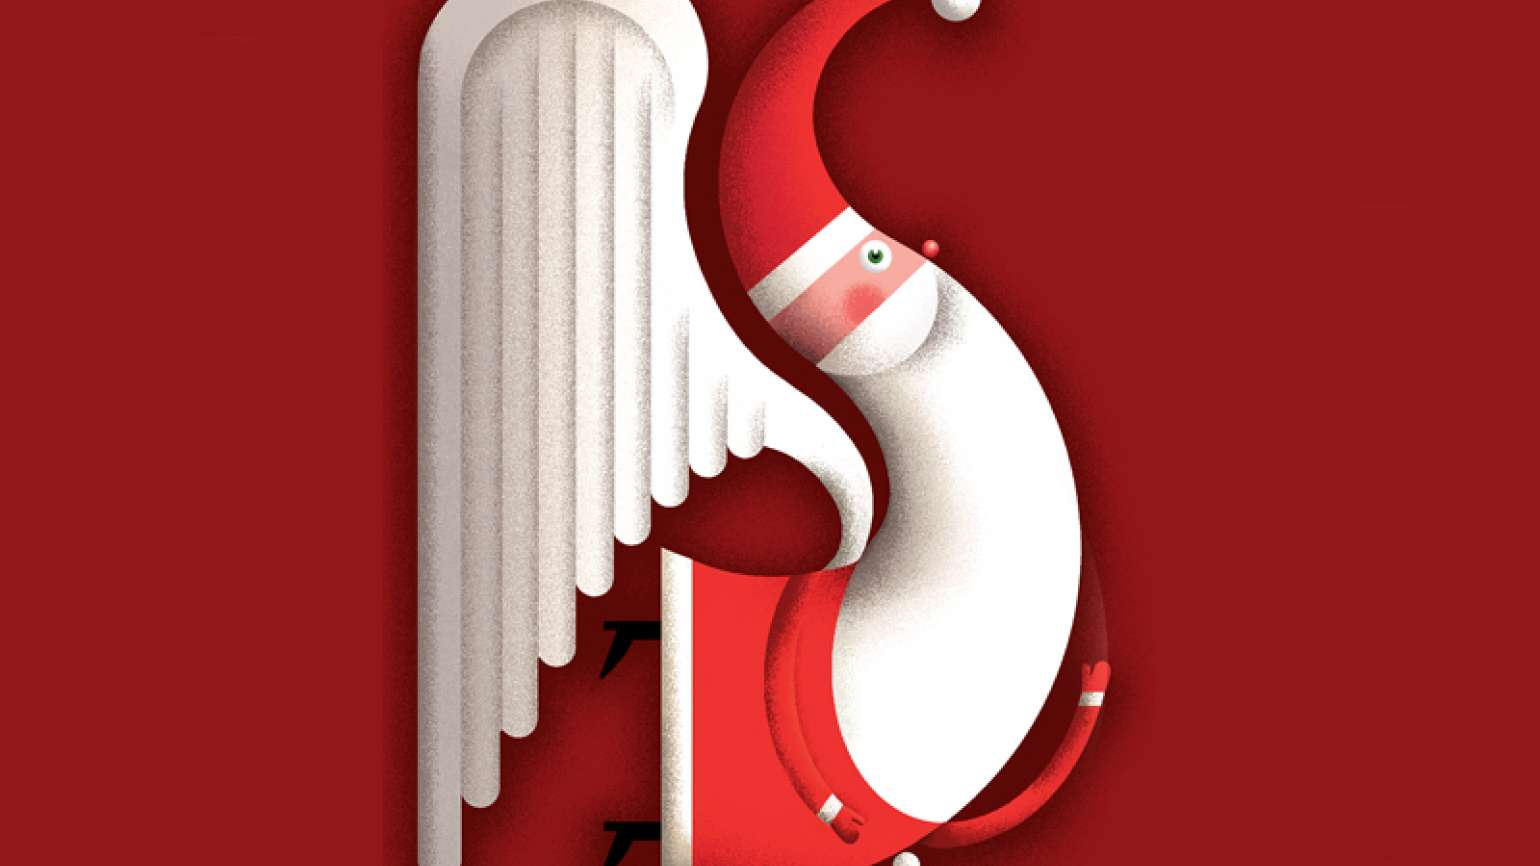 An artist's stylized rendering of Santa Claus with white angel wings